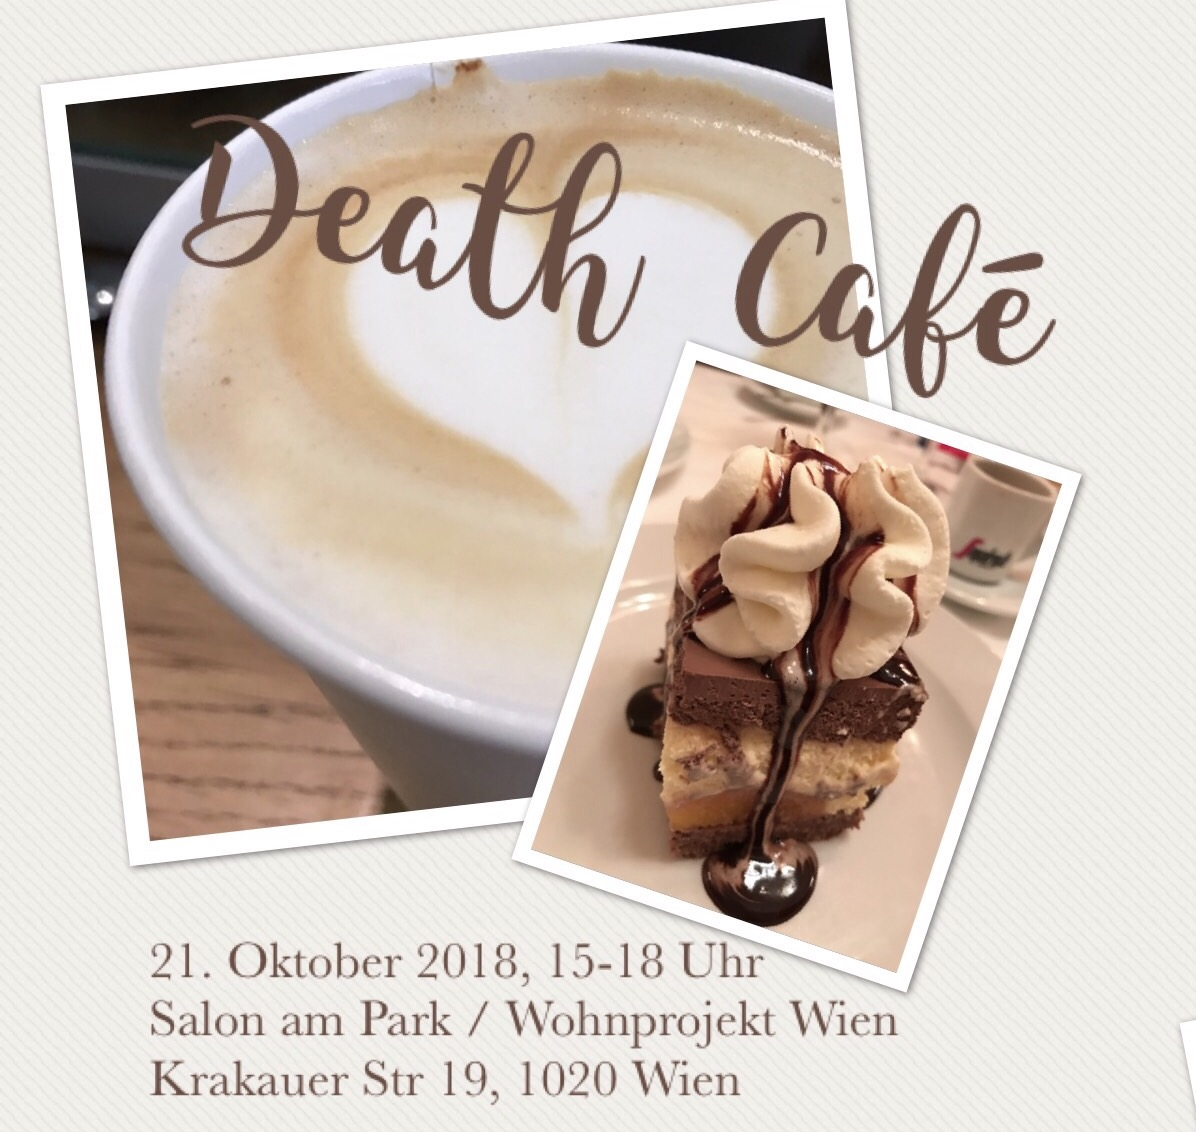 Death Cafe im Salon am Park